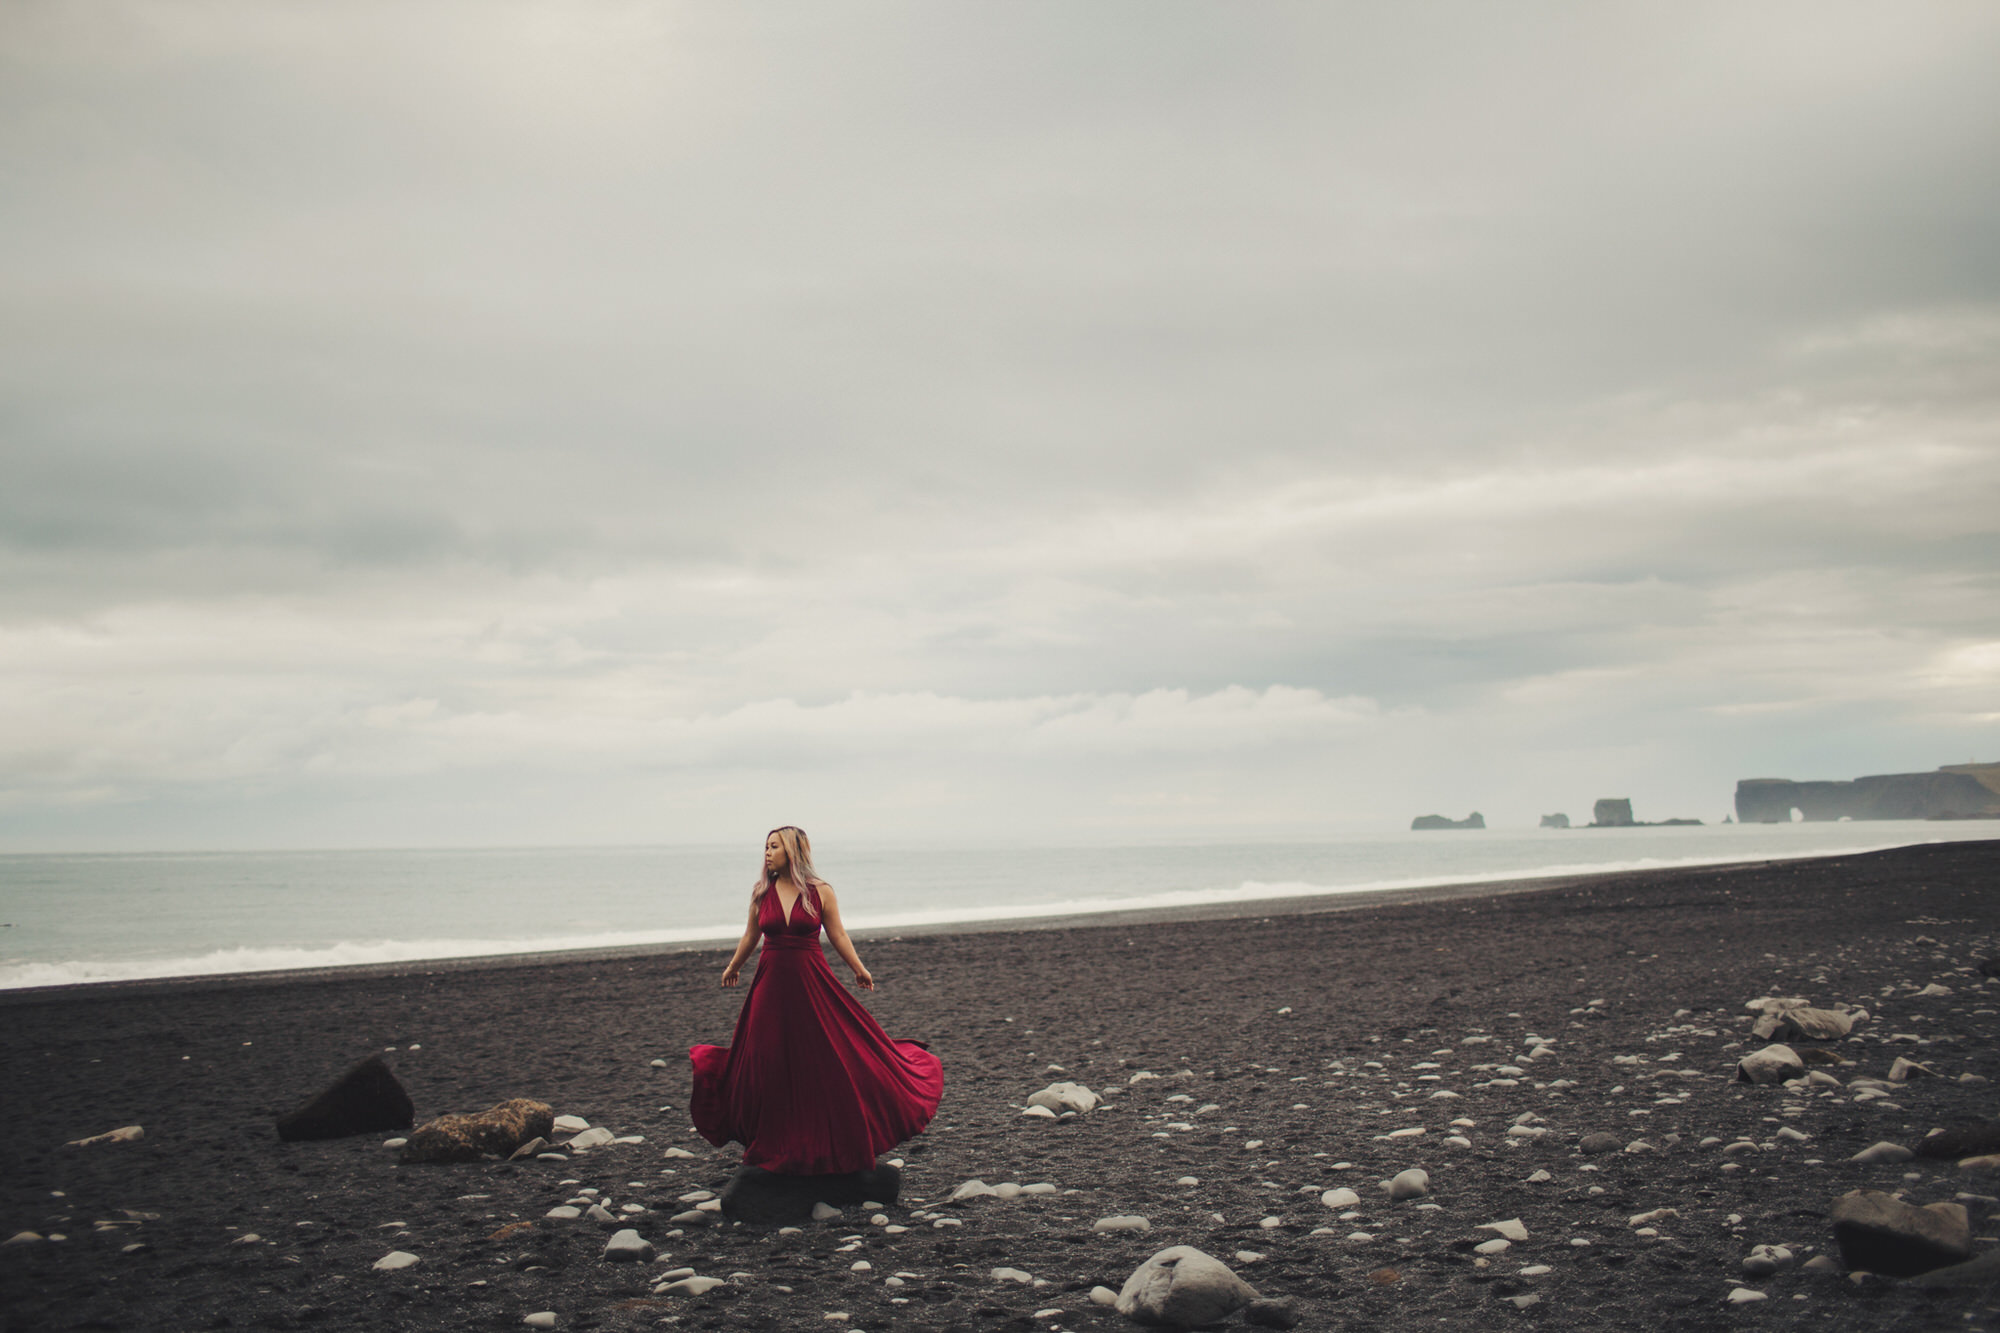 Wedding photographer Reynisfjara beach iceland